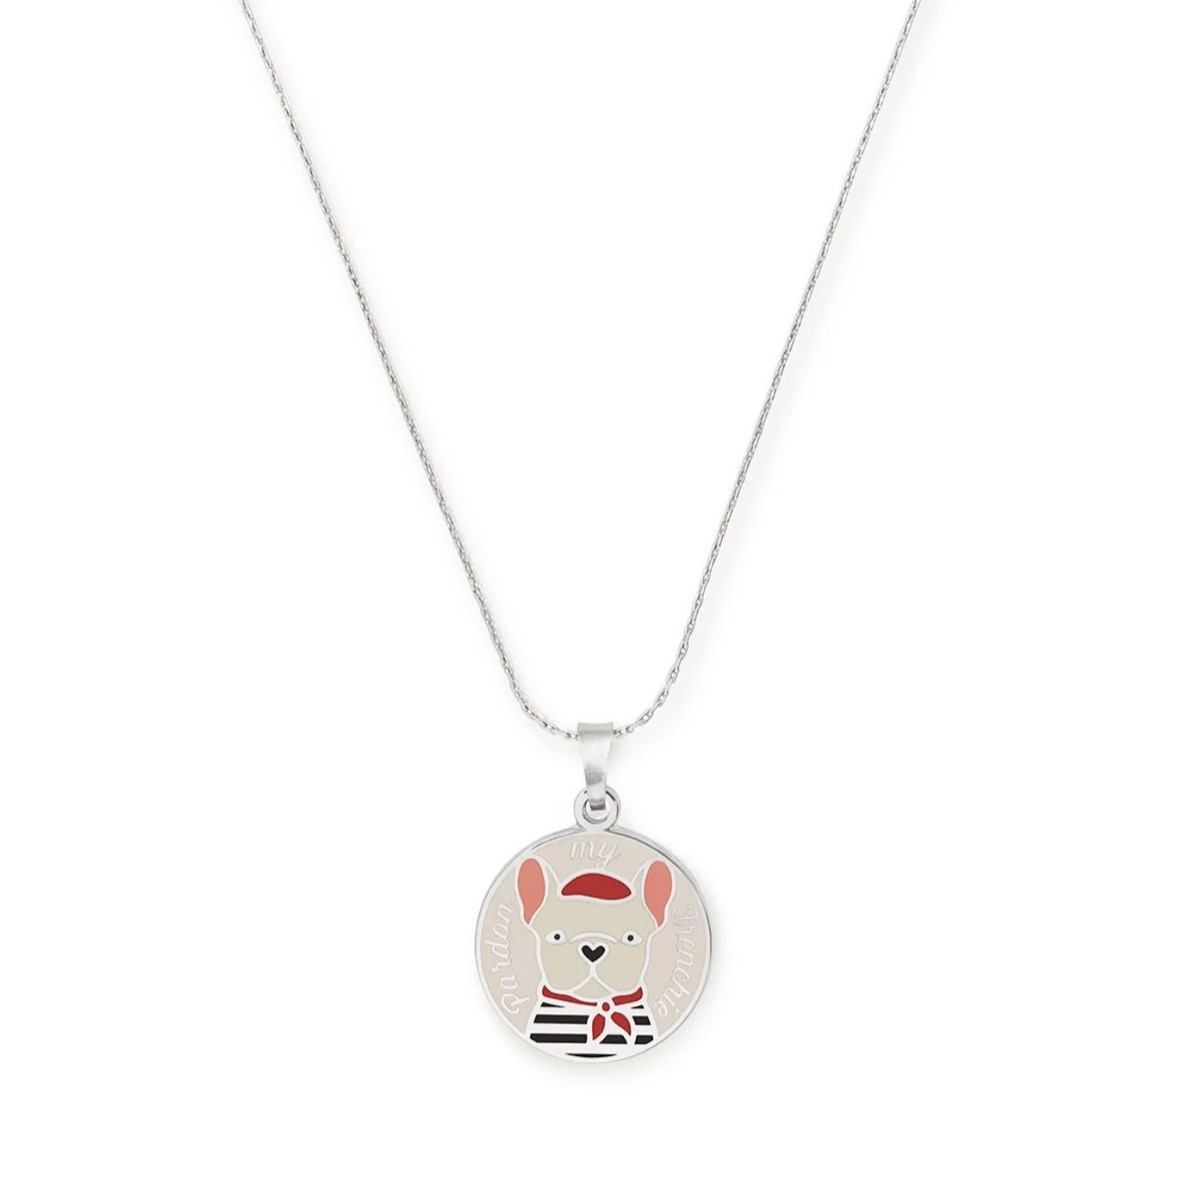 Alex and Ani French bulldog necklace